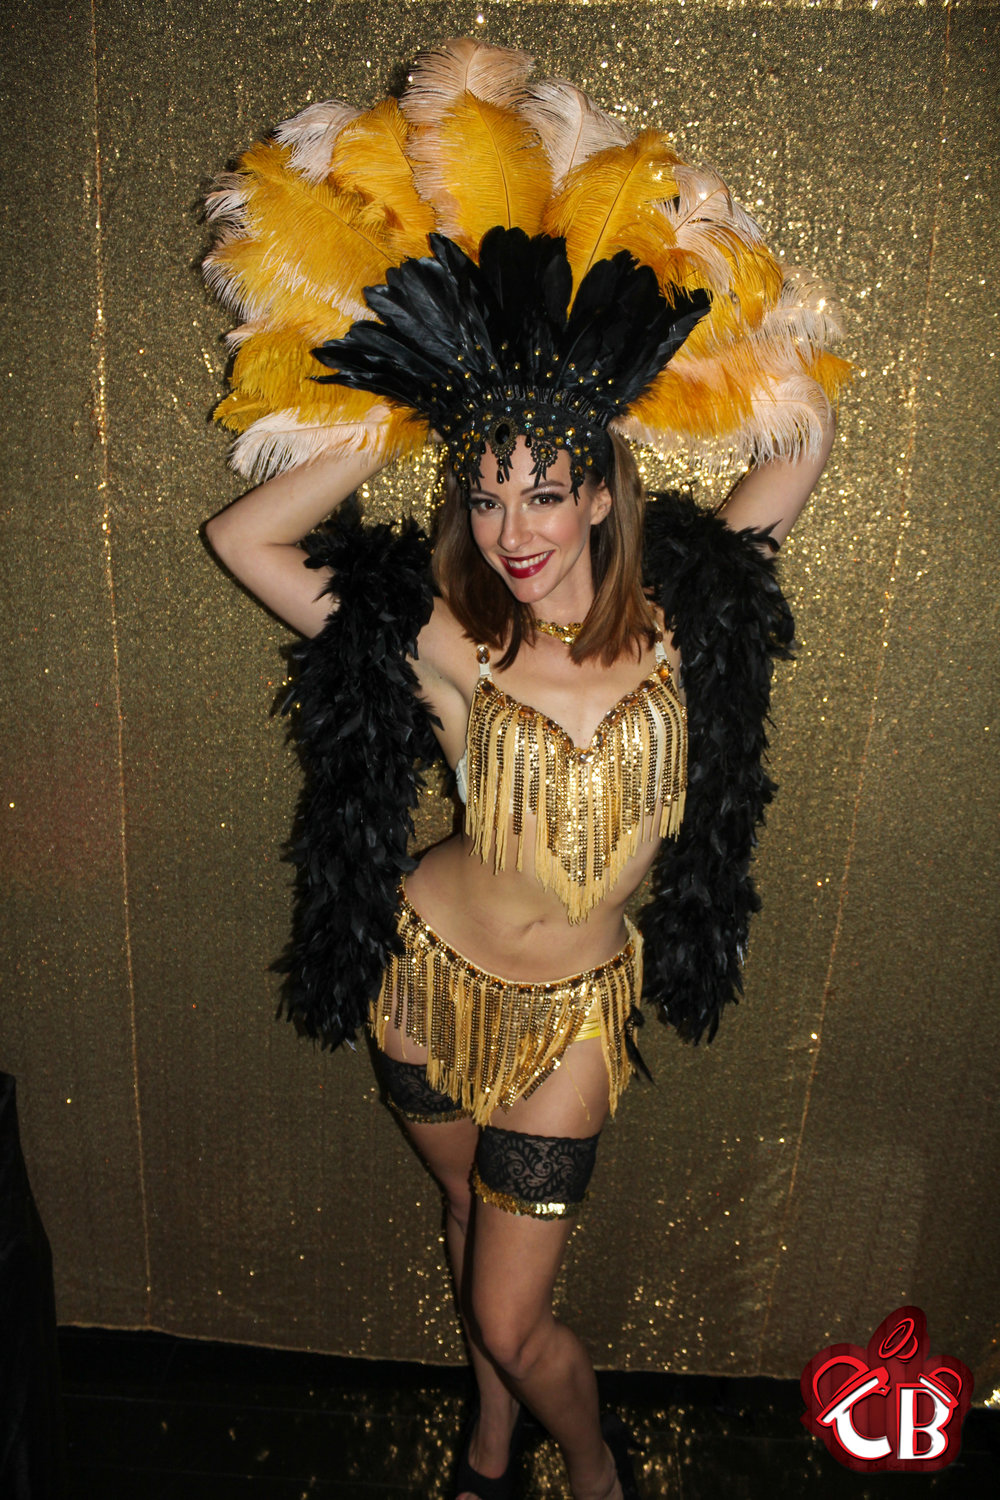 Showgirl-Roxy-(1-of-4).jpg